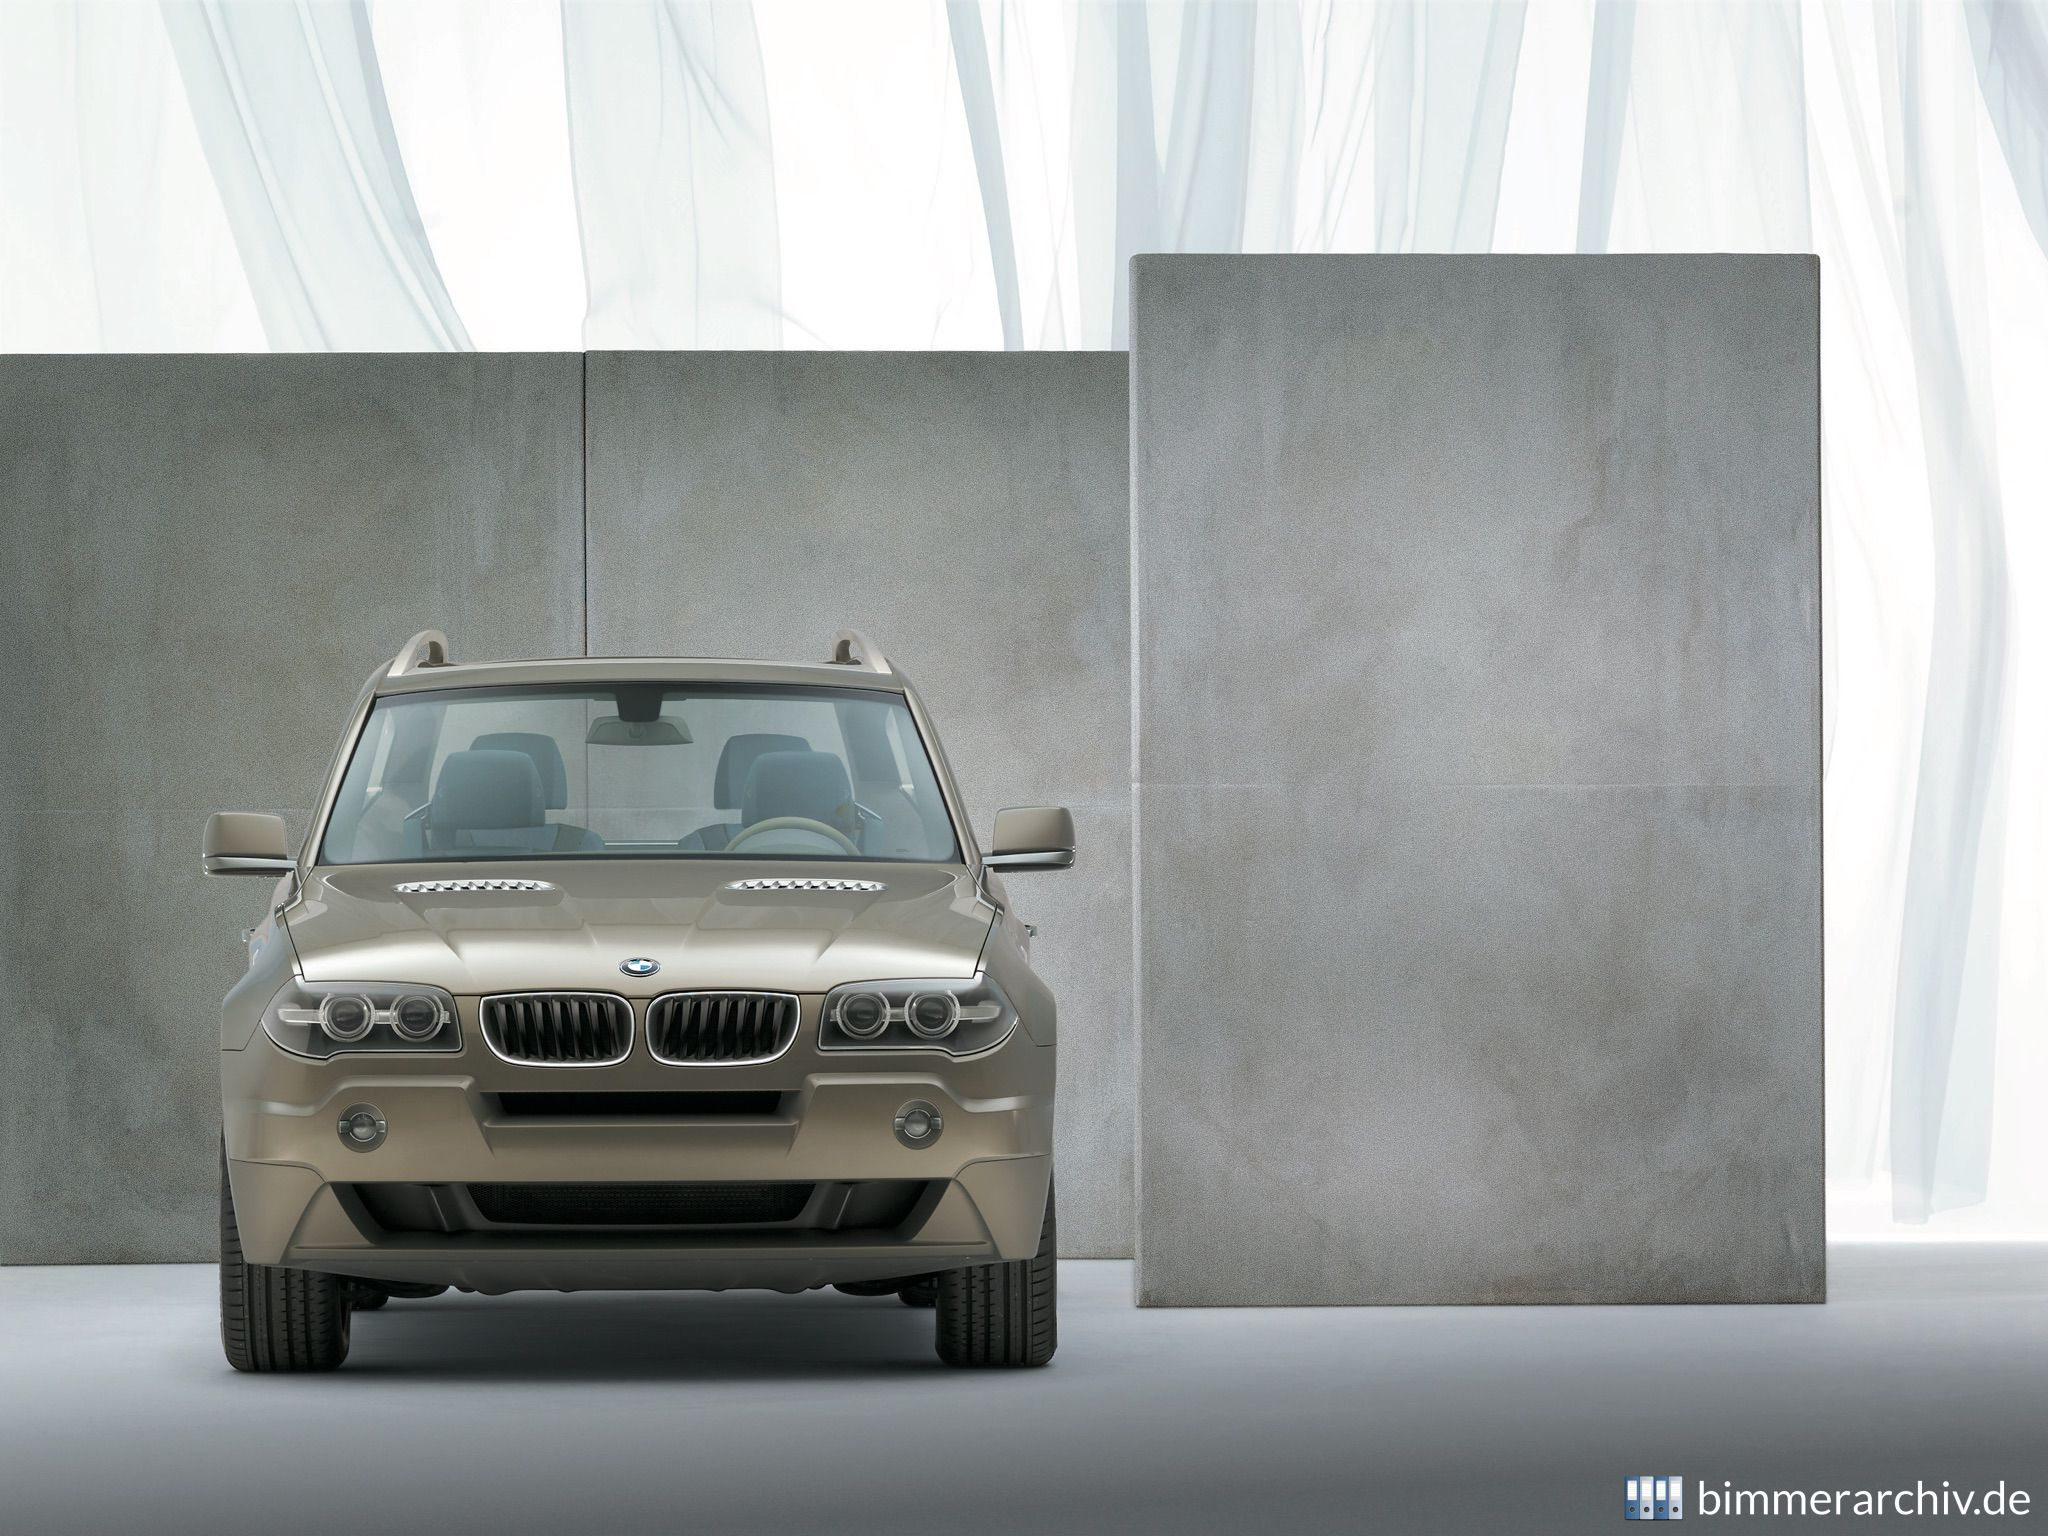 Model Archive for BMW models · BMW xActivity · bmwarchive.org